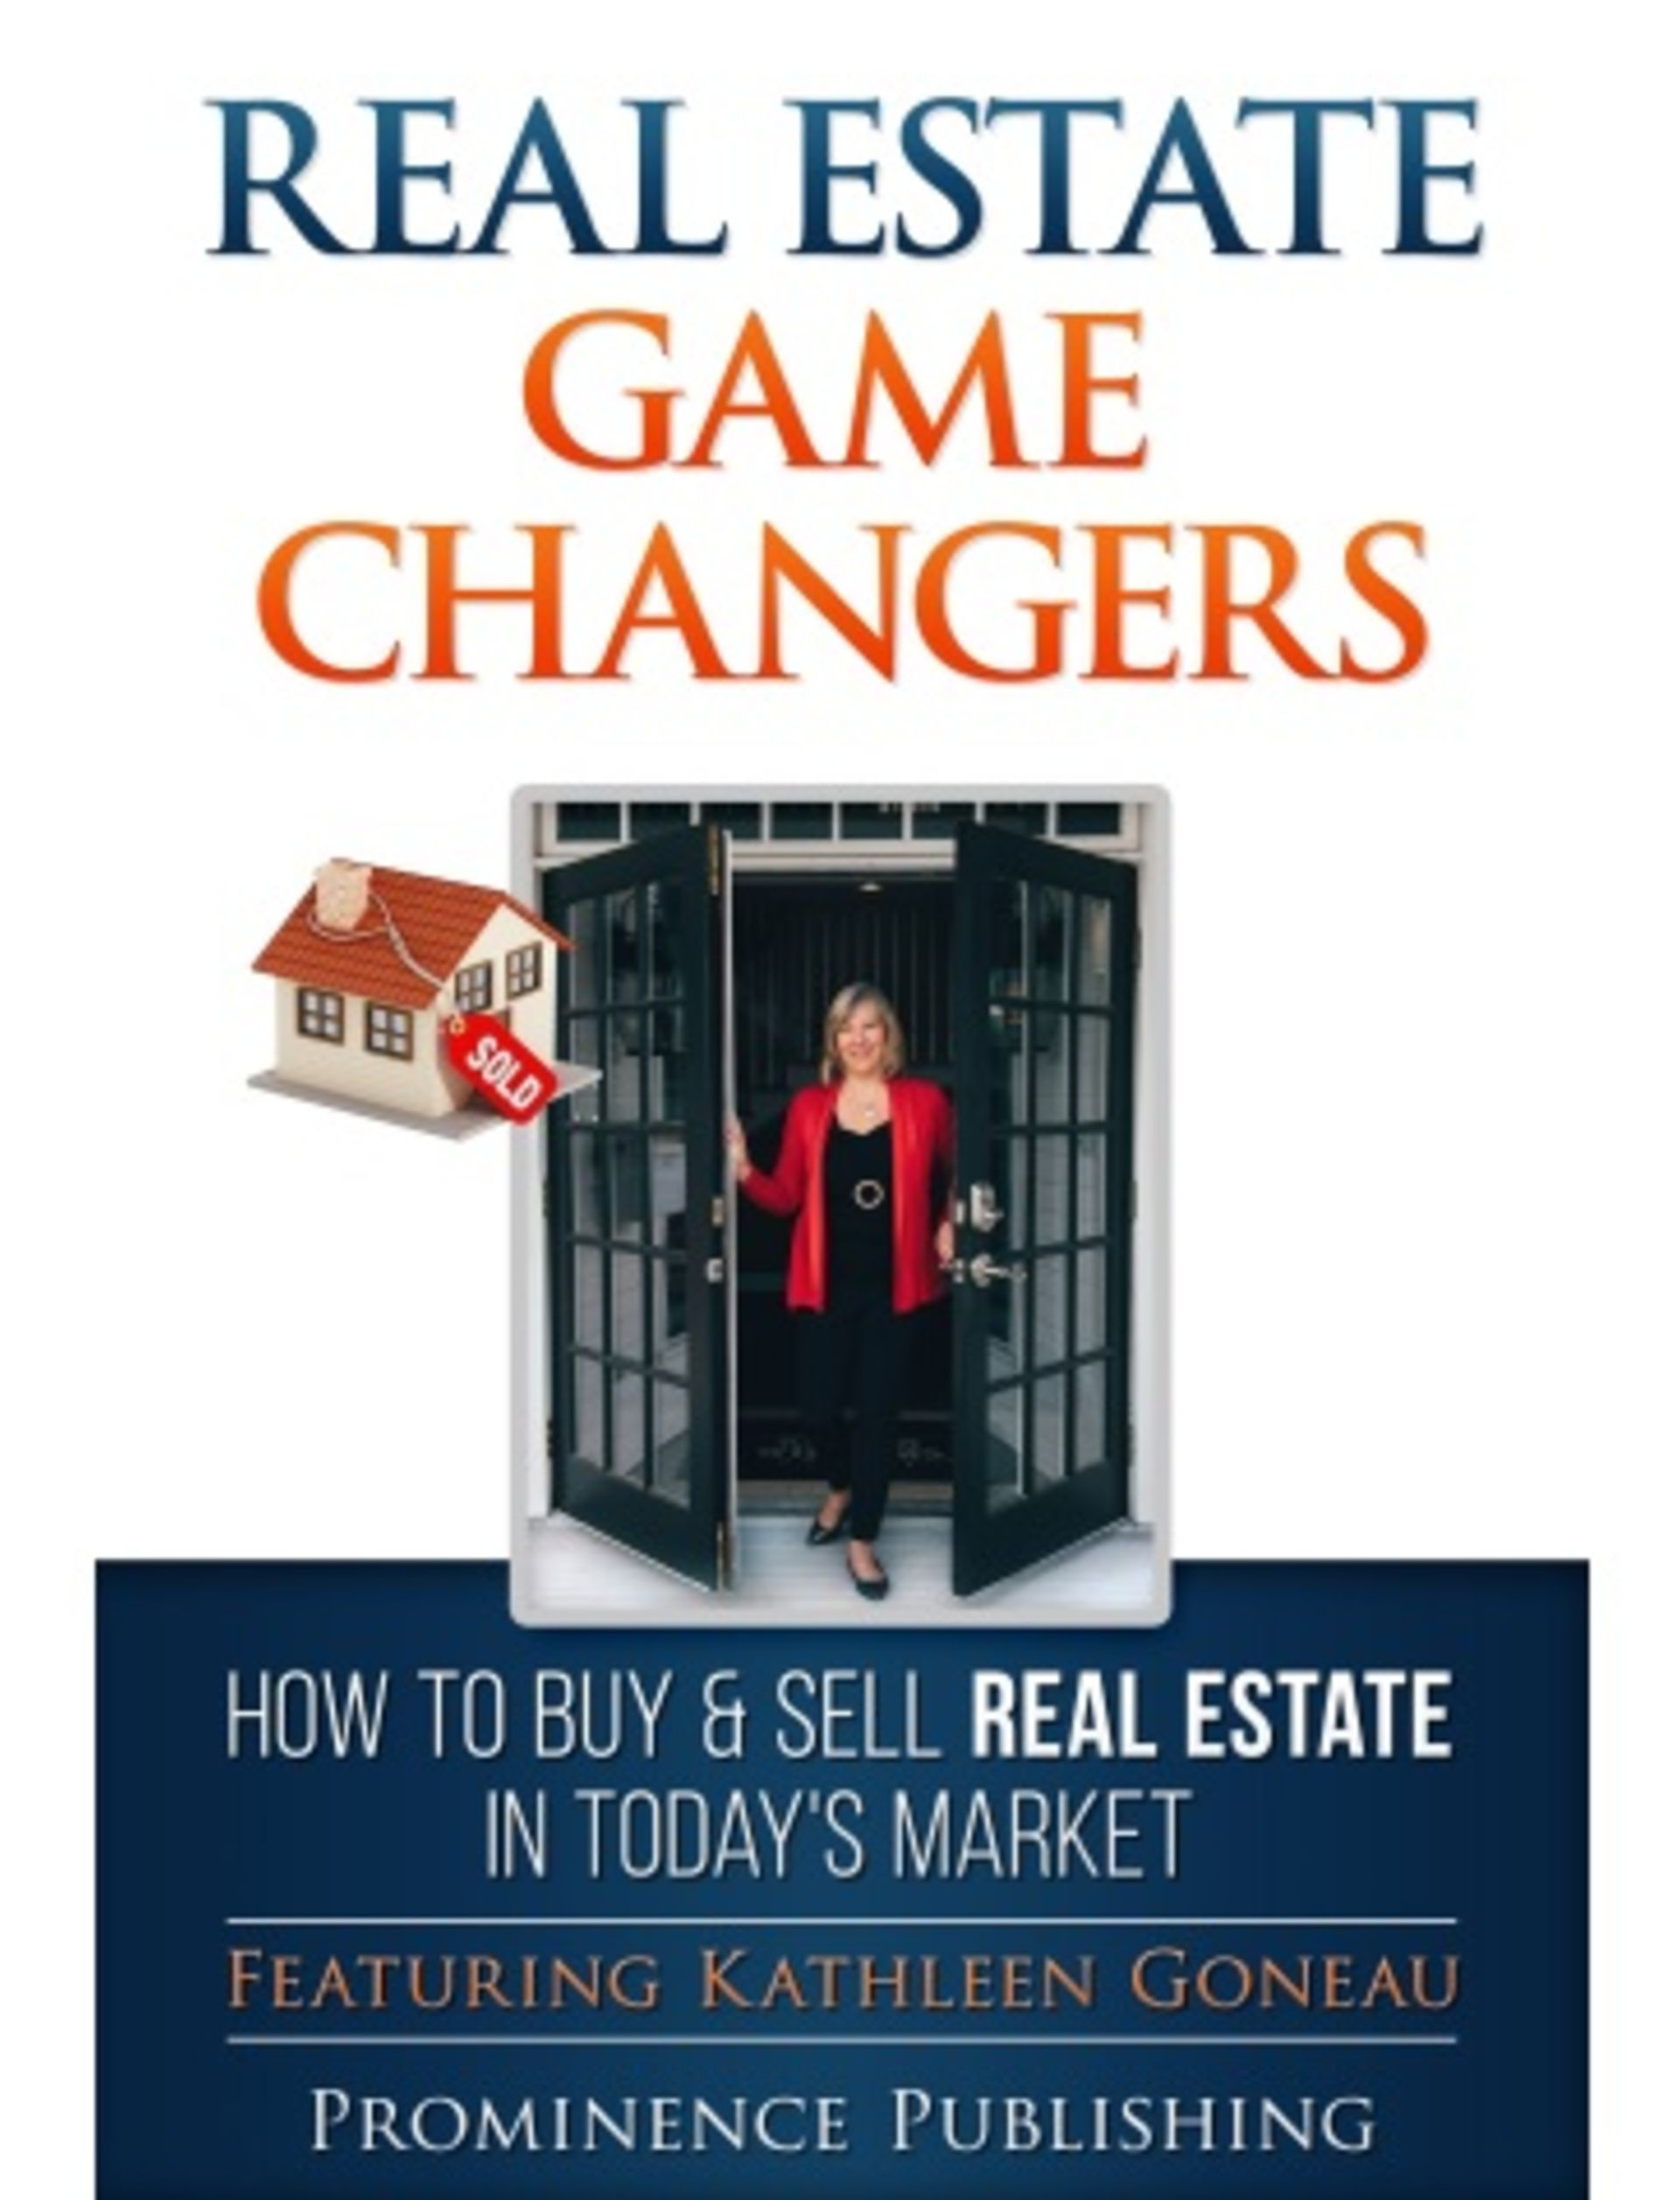 Real Estate Game Changers